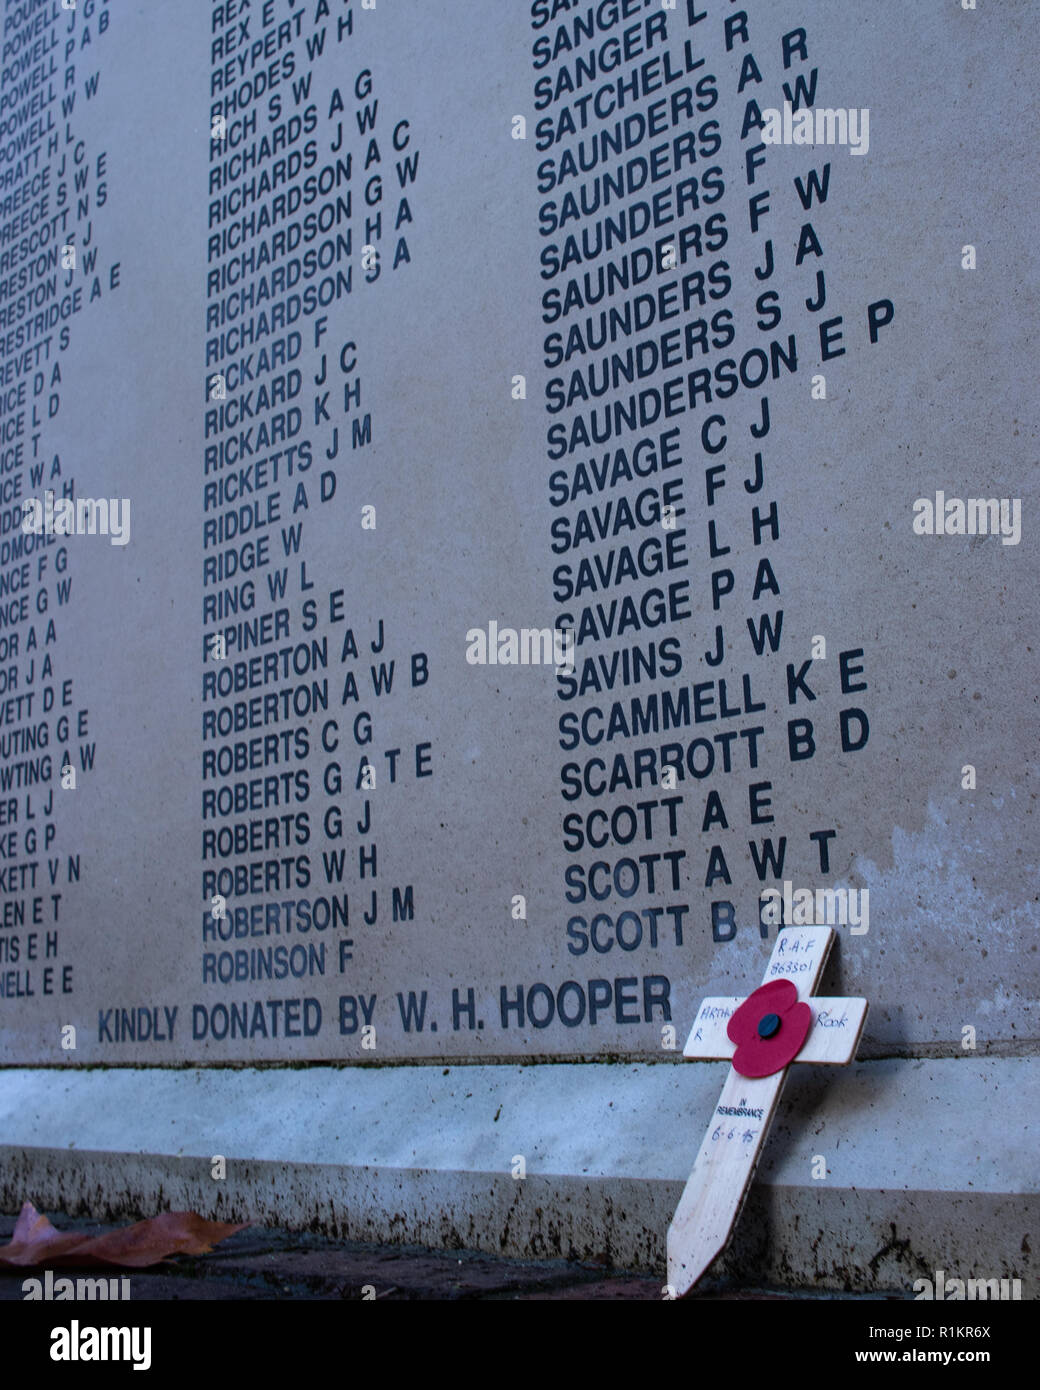 A remembrance day poppy and cross laid in front of the names writted an a war memorial - Stock Image